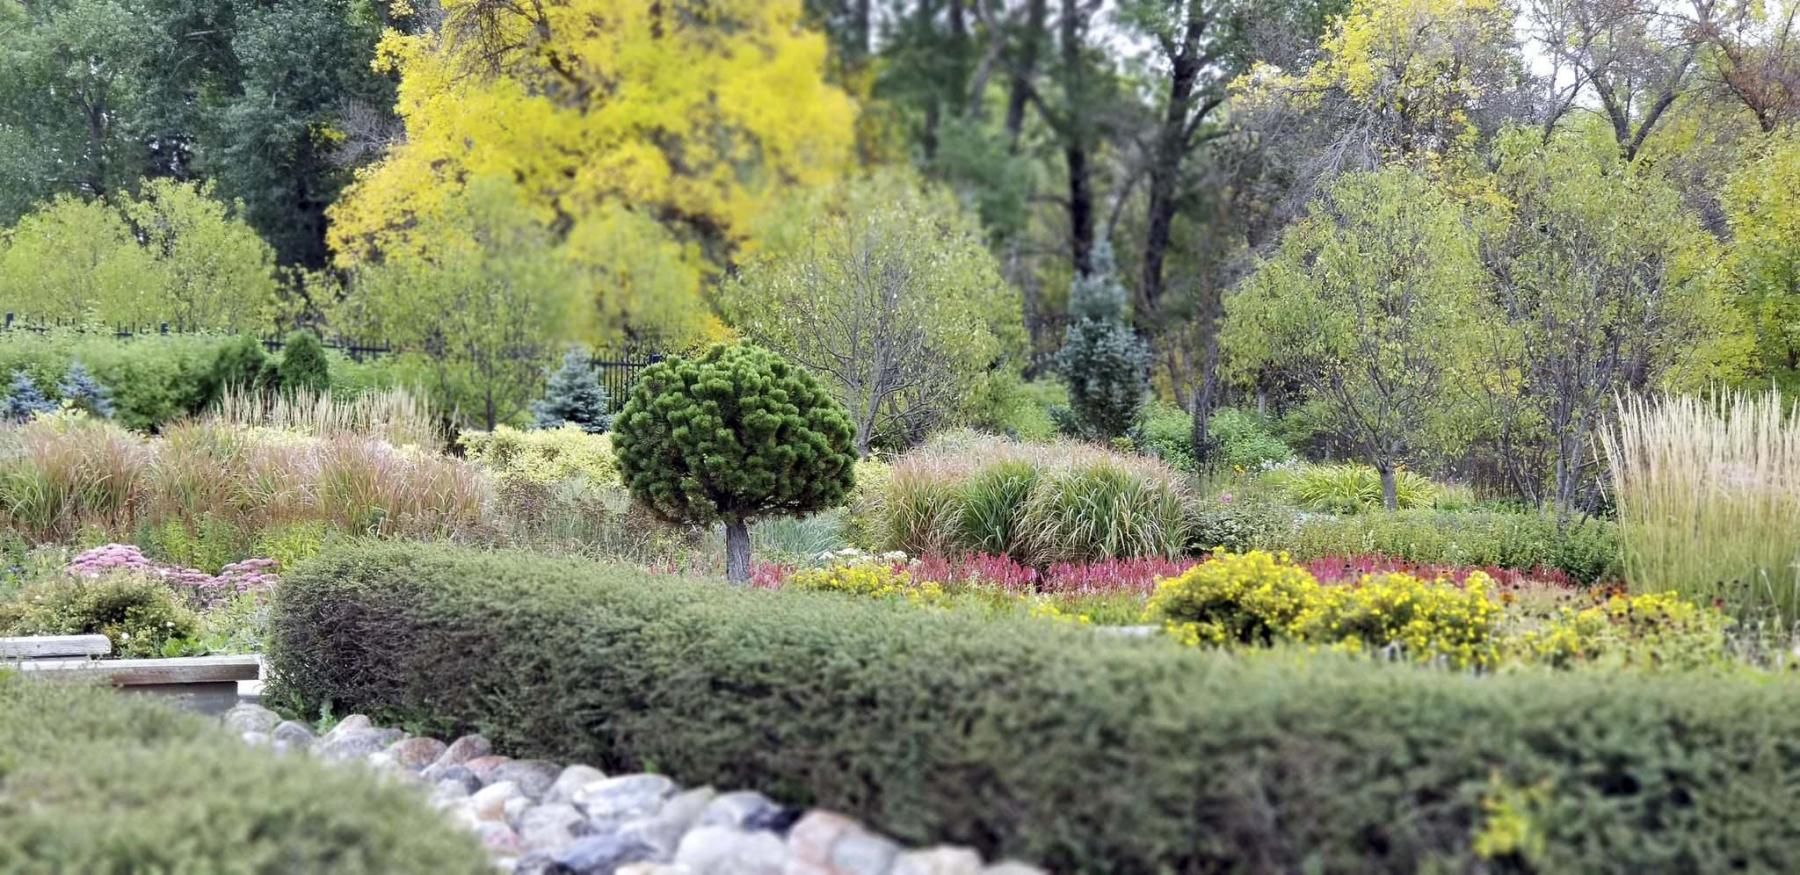 <p>photos by Colleen Zacharias</p><p>At the International Peace Gardens, stroll through the outdoor gardens that are rich in layers of four-season colour and diversity.</p>